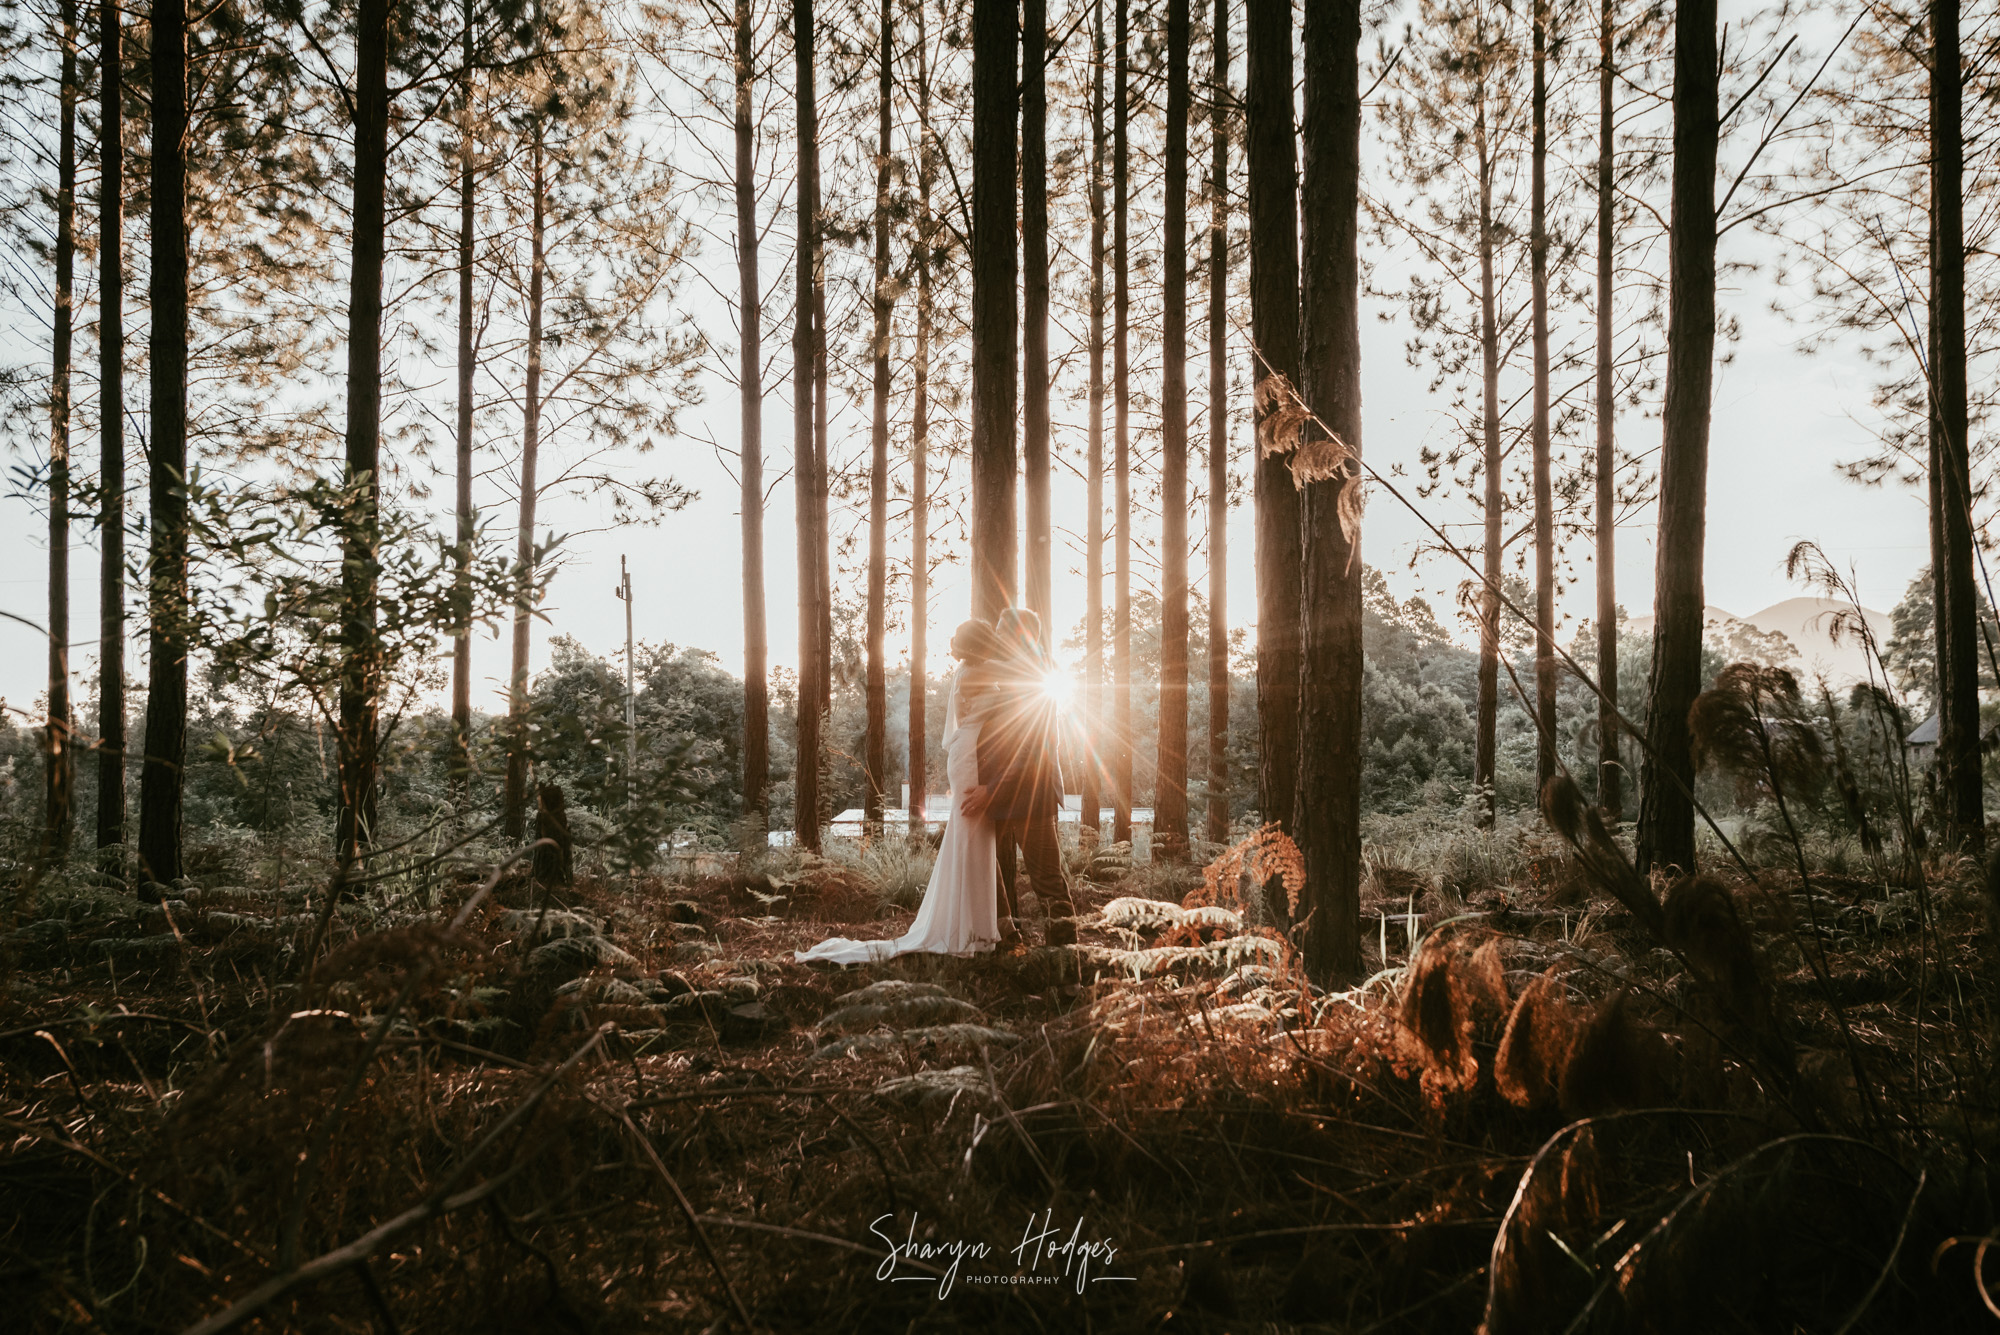 Annie & Reinhardt's wedding took place on the pristine Nature's Valley Beach and the reception at Kay & Monty Vineyards.